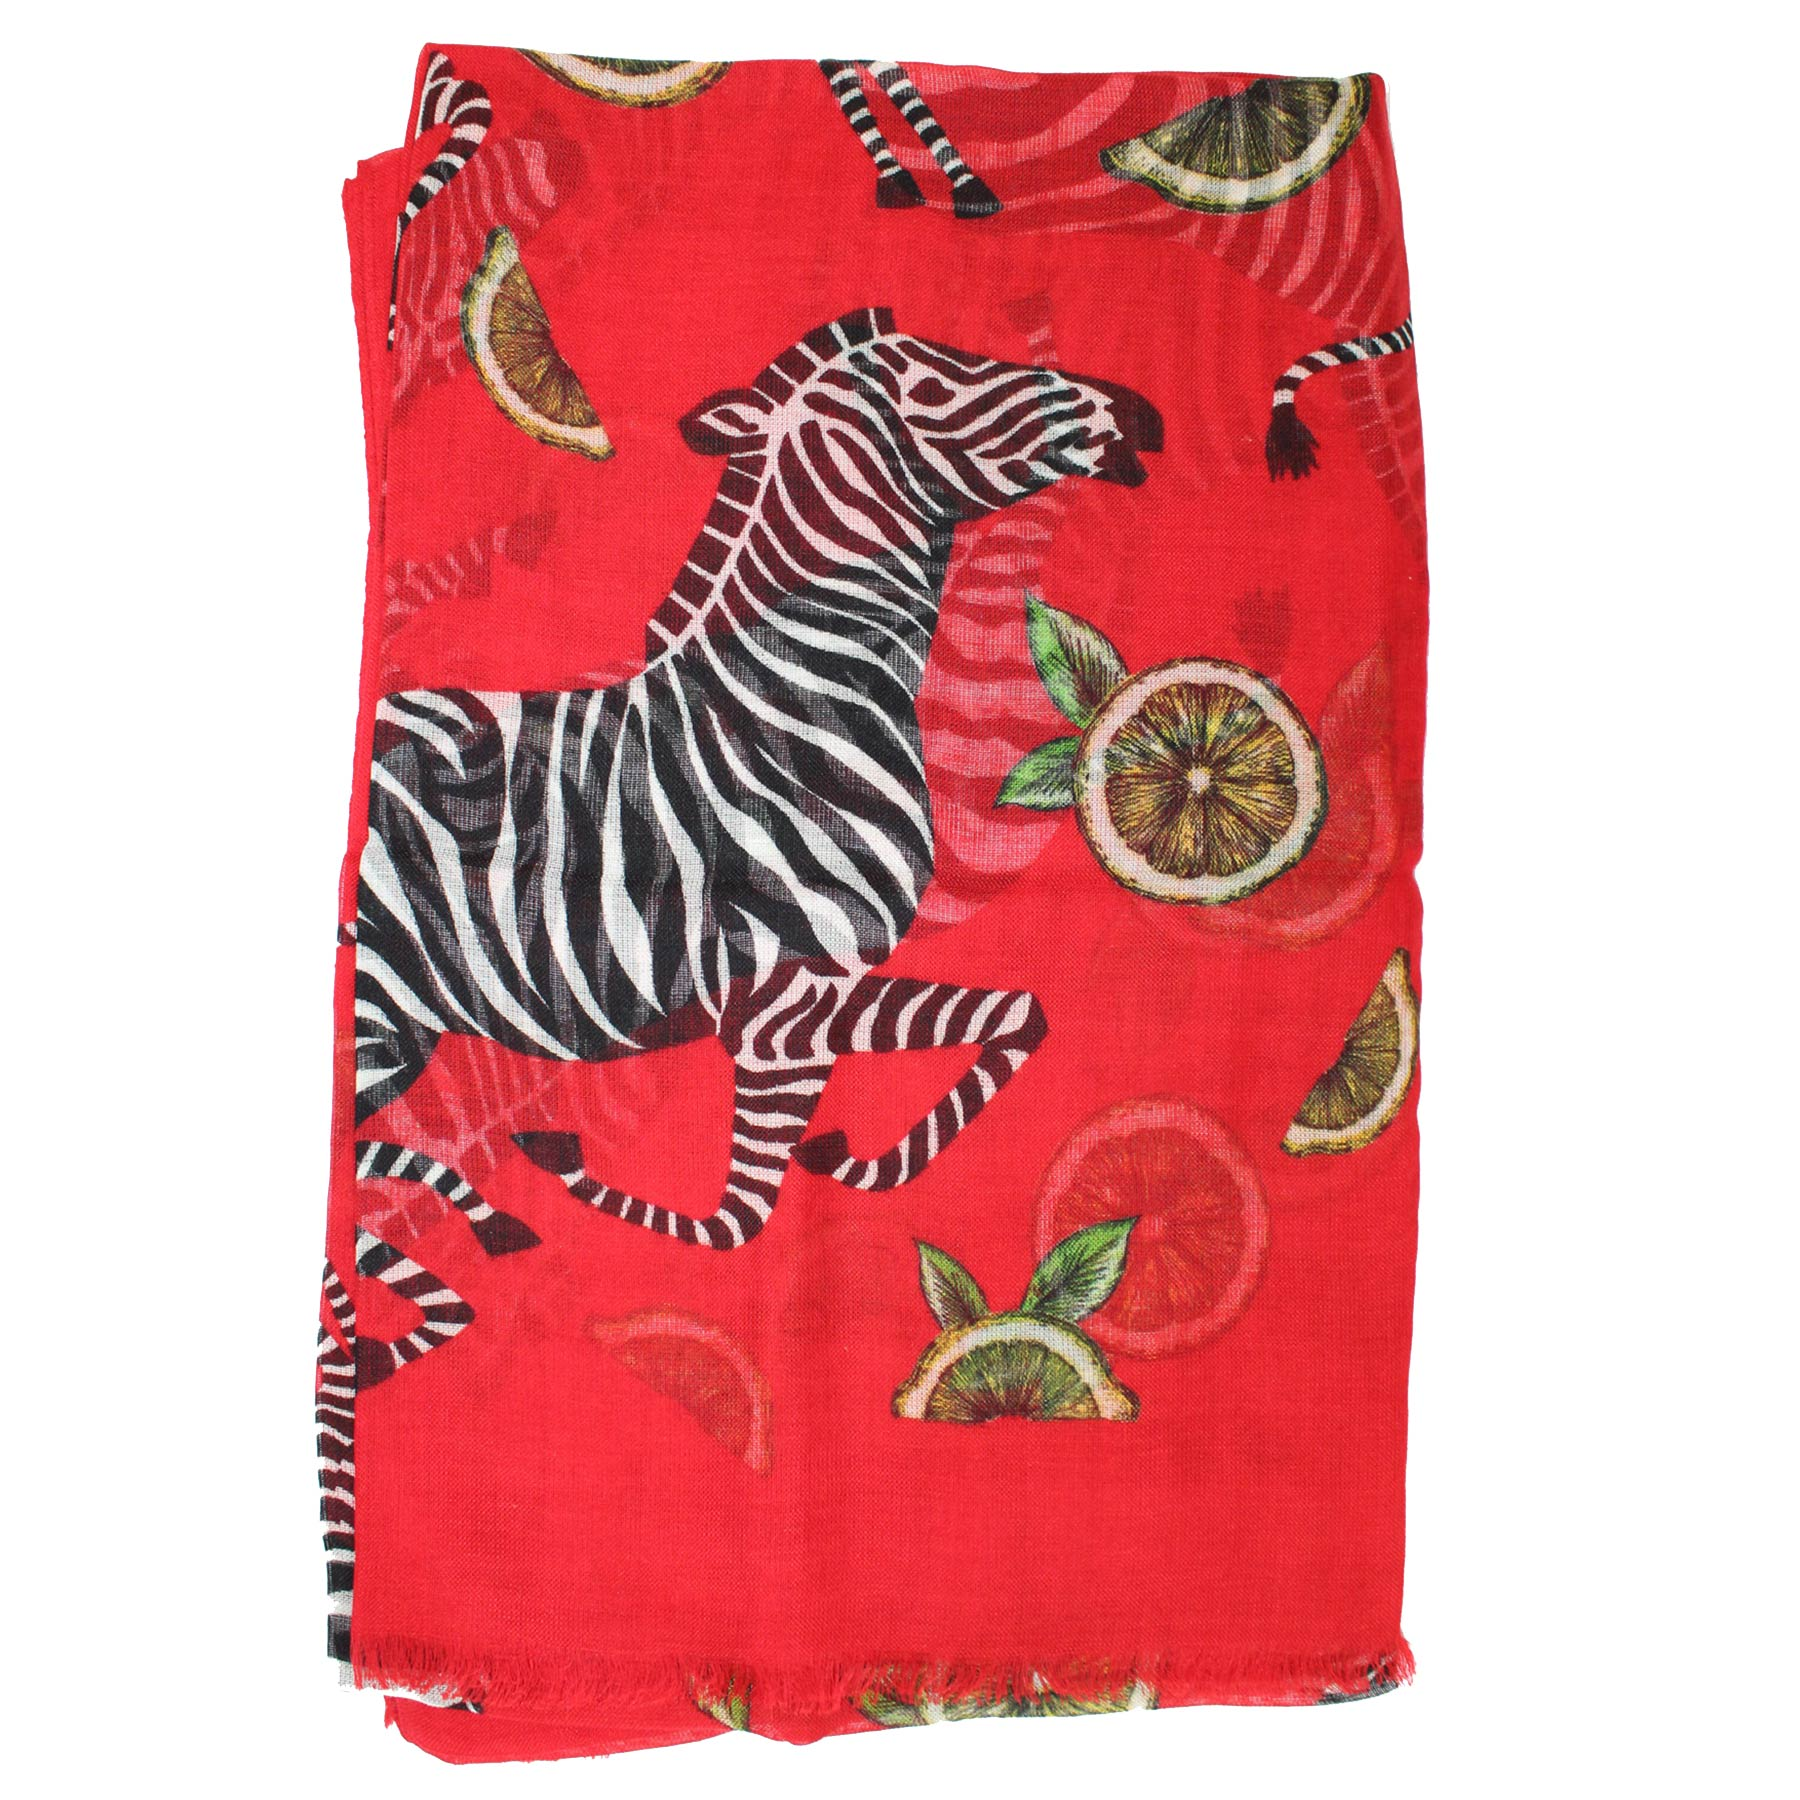 Dolce & Gabbana Scarf Red Zebra & Lemon